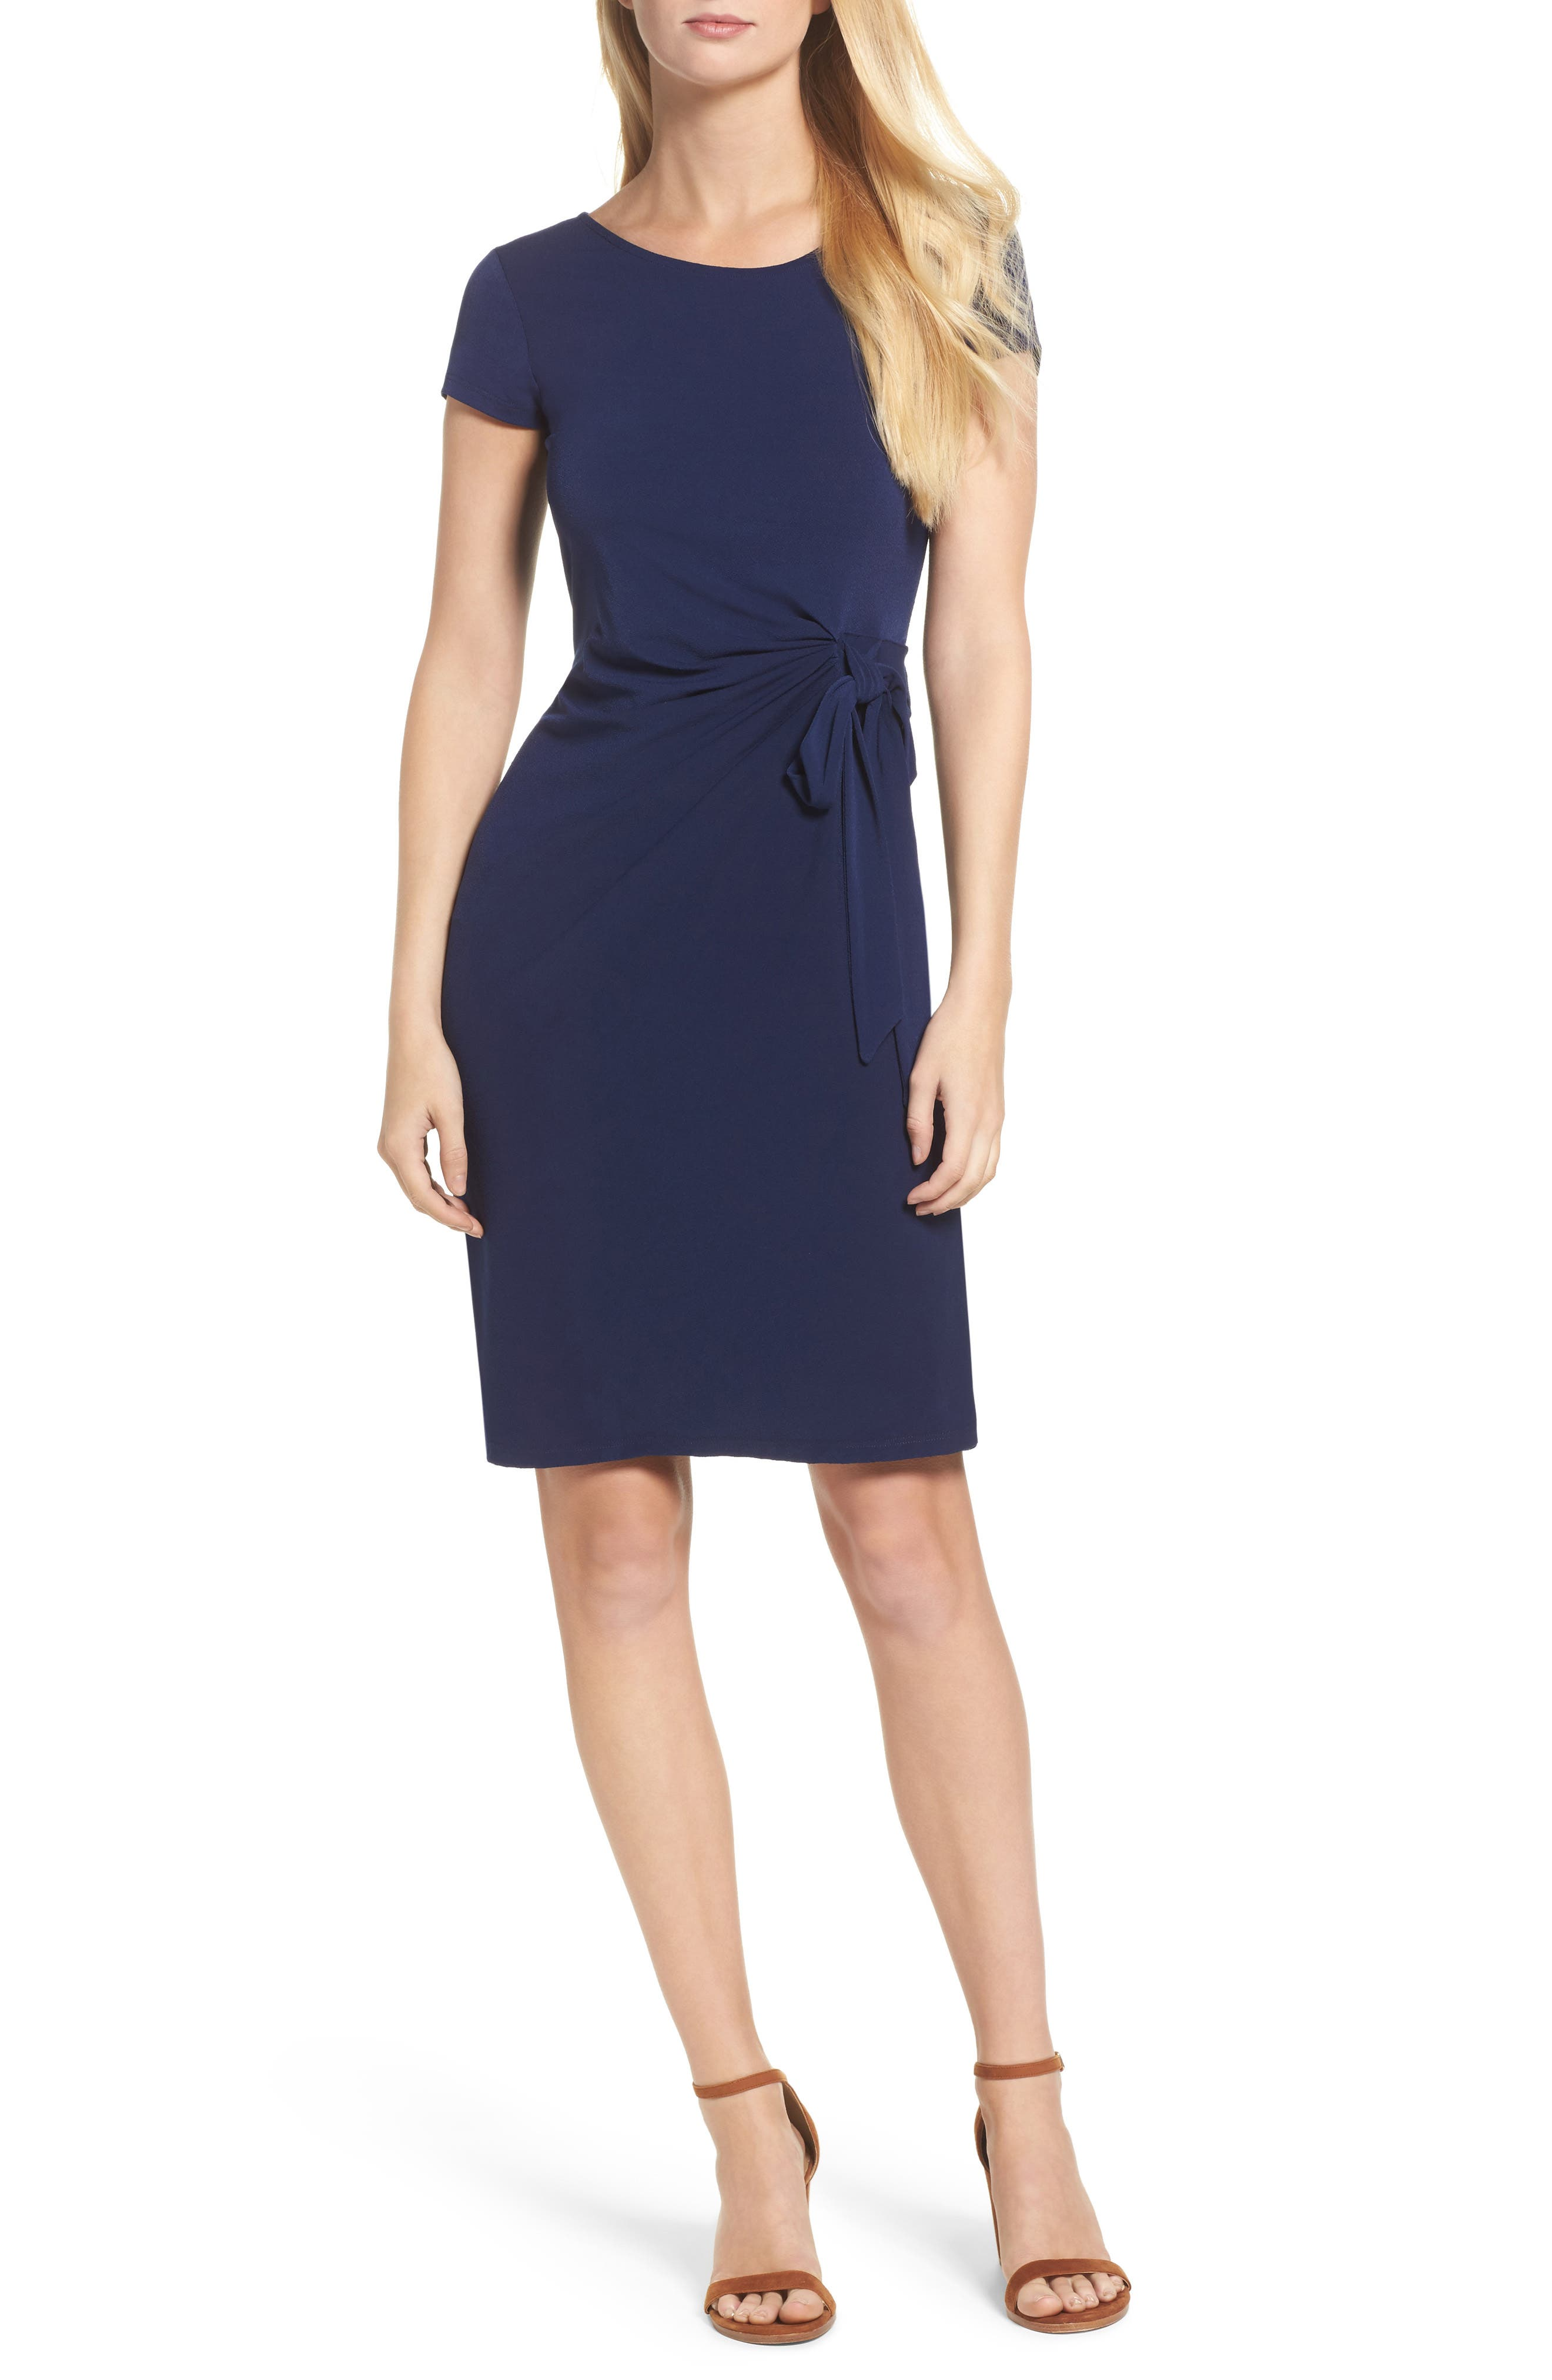 Leota Madison Stretch Sheath Dress